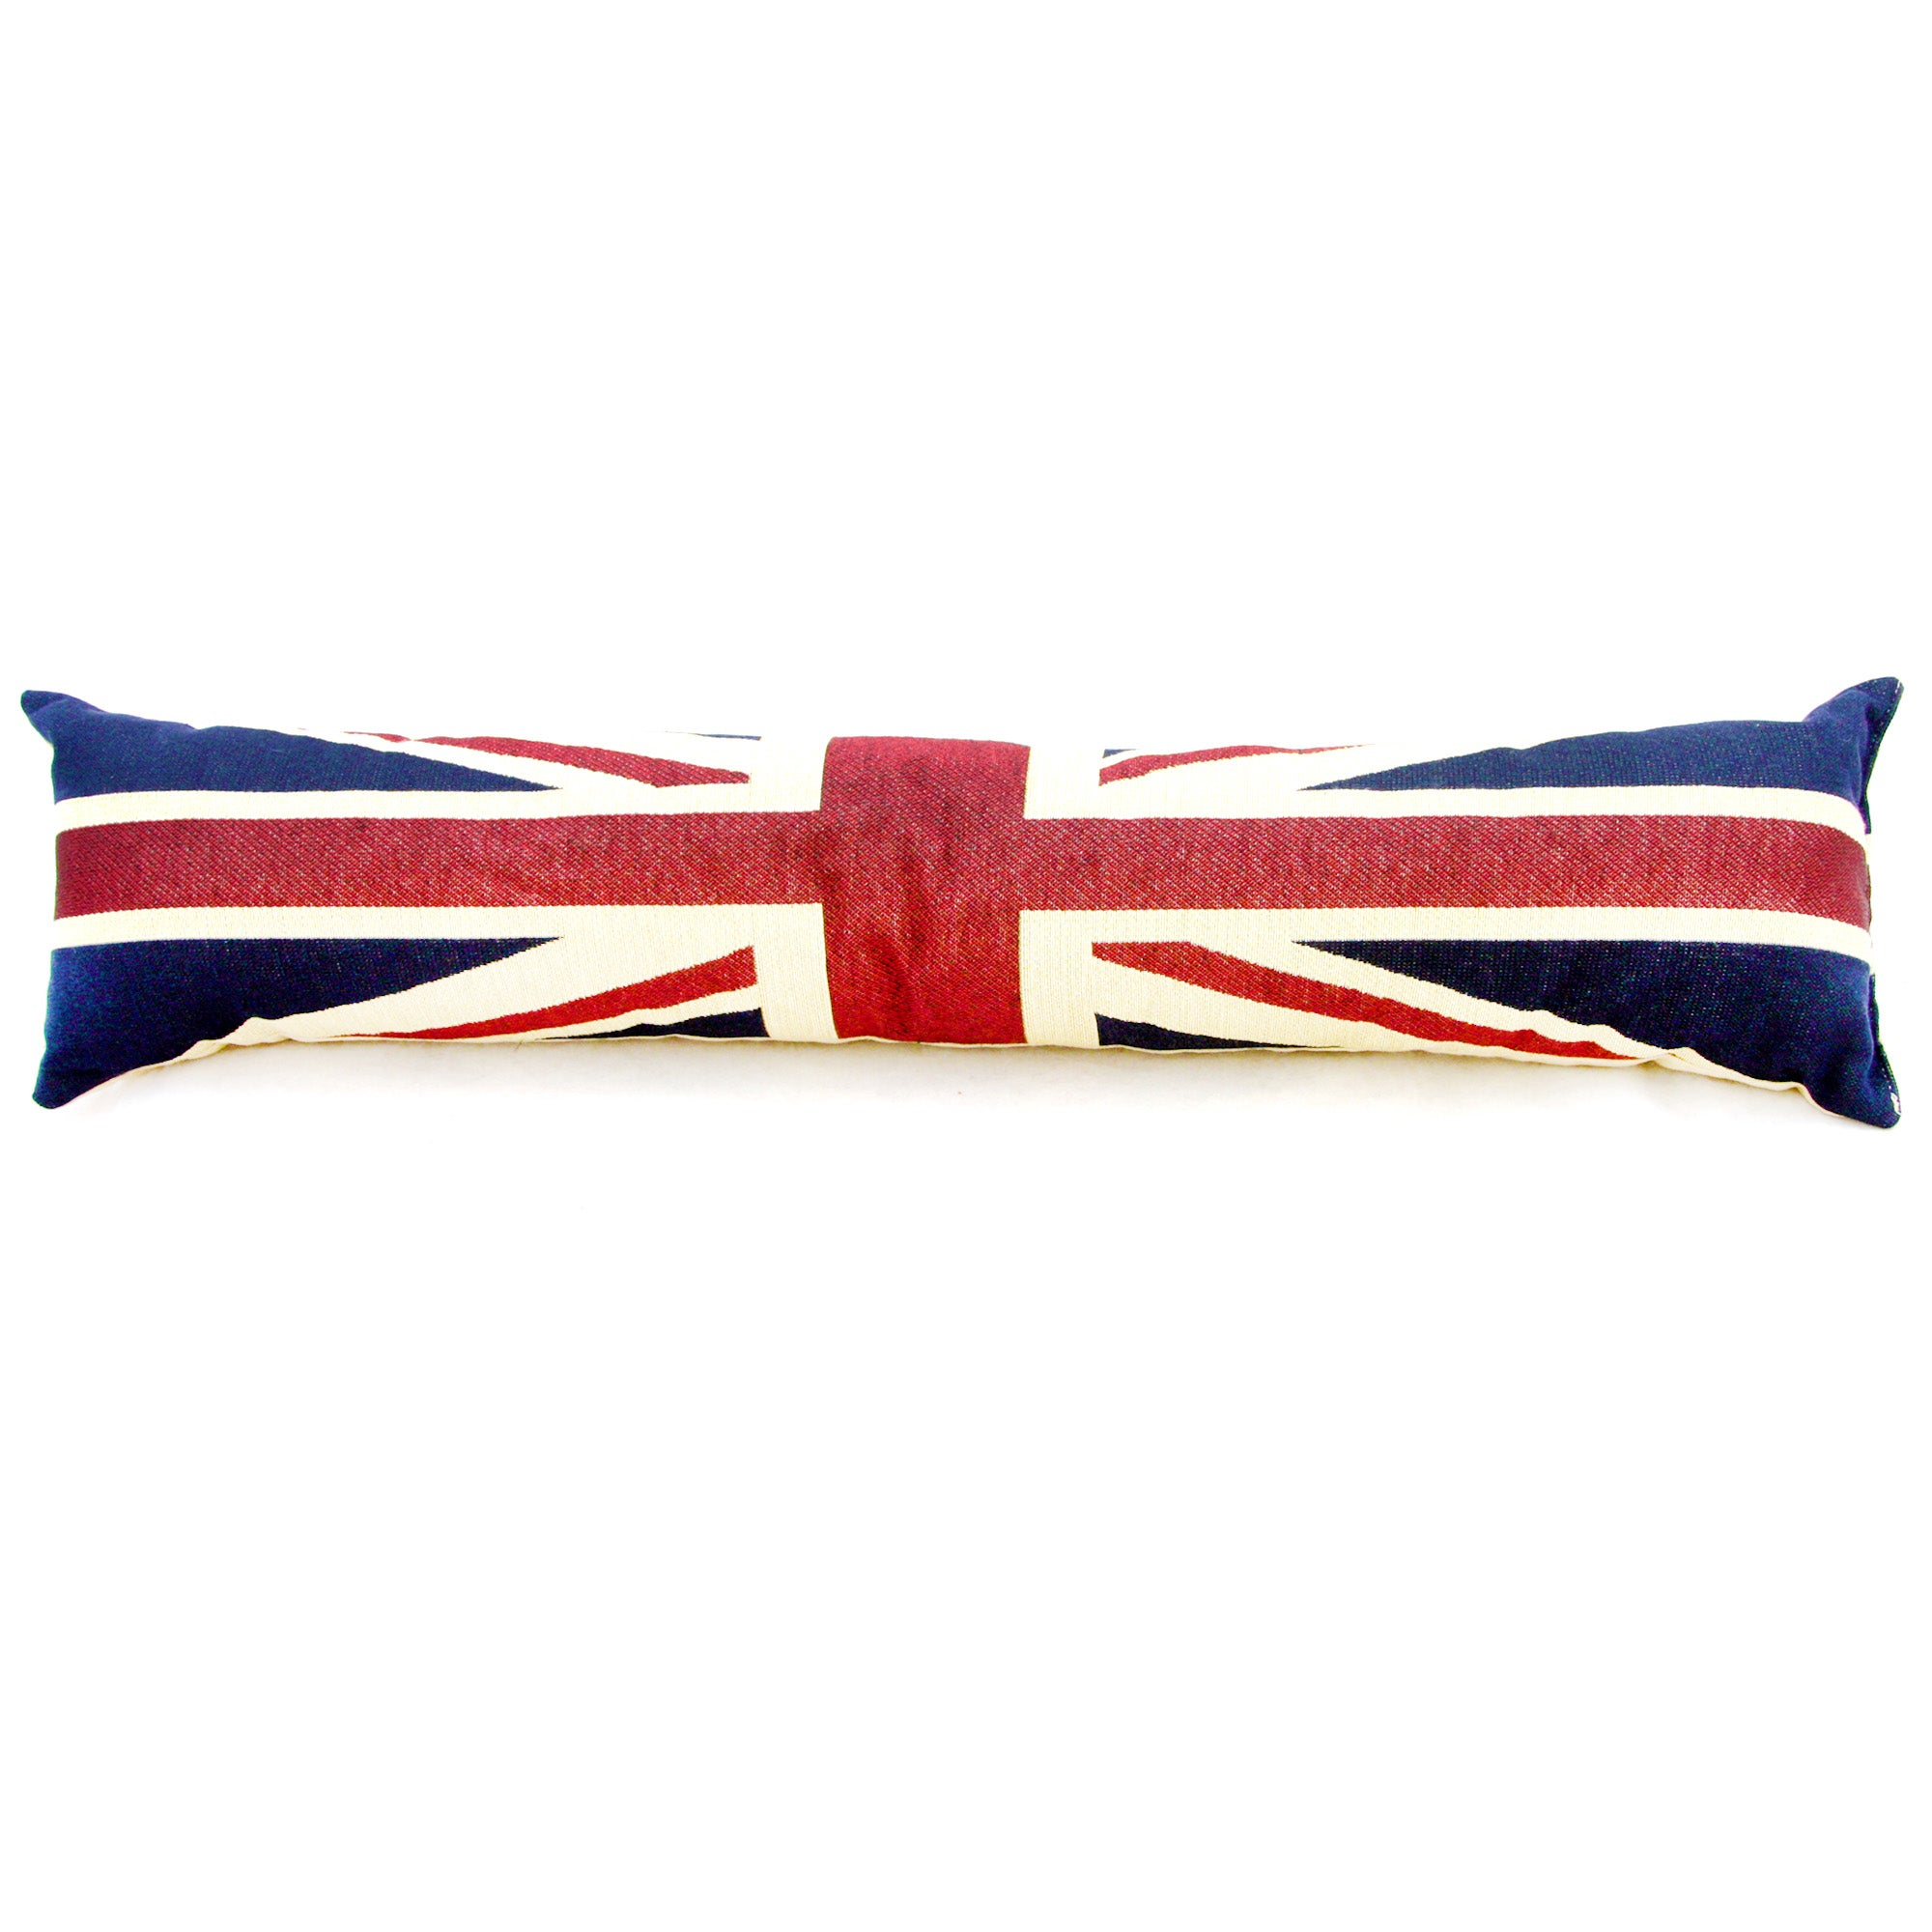 Vintage Union Jack Draught Excluder Blue  Red